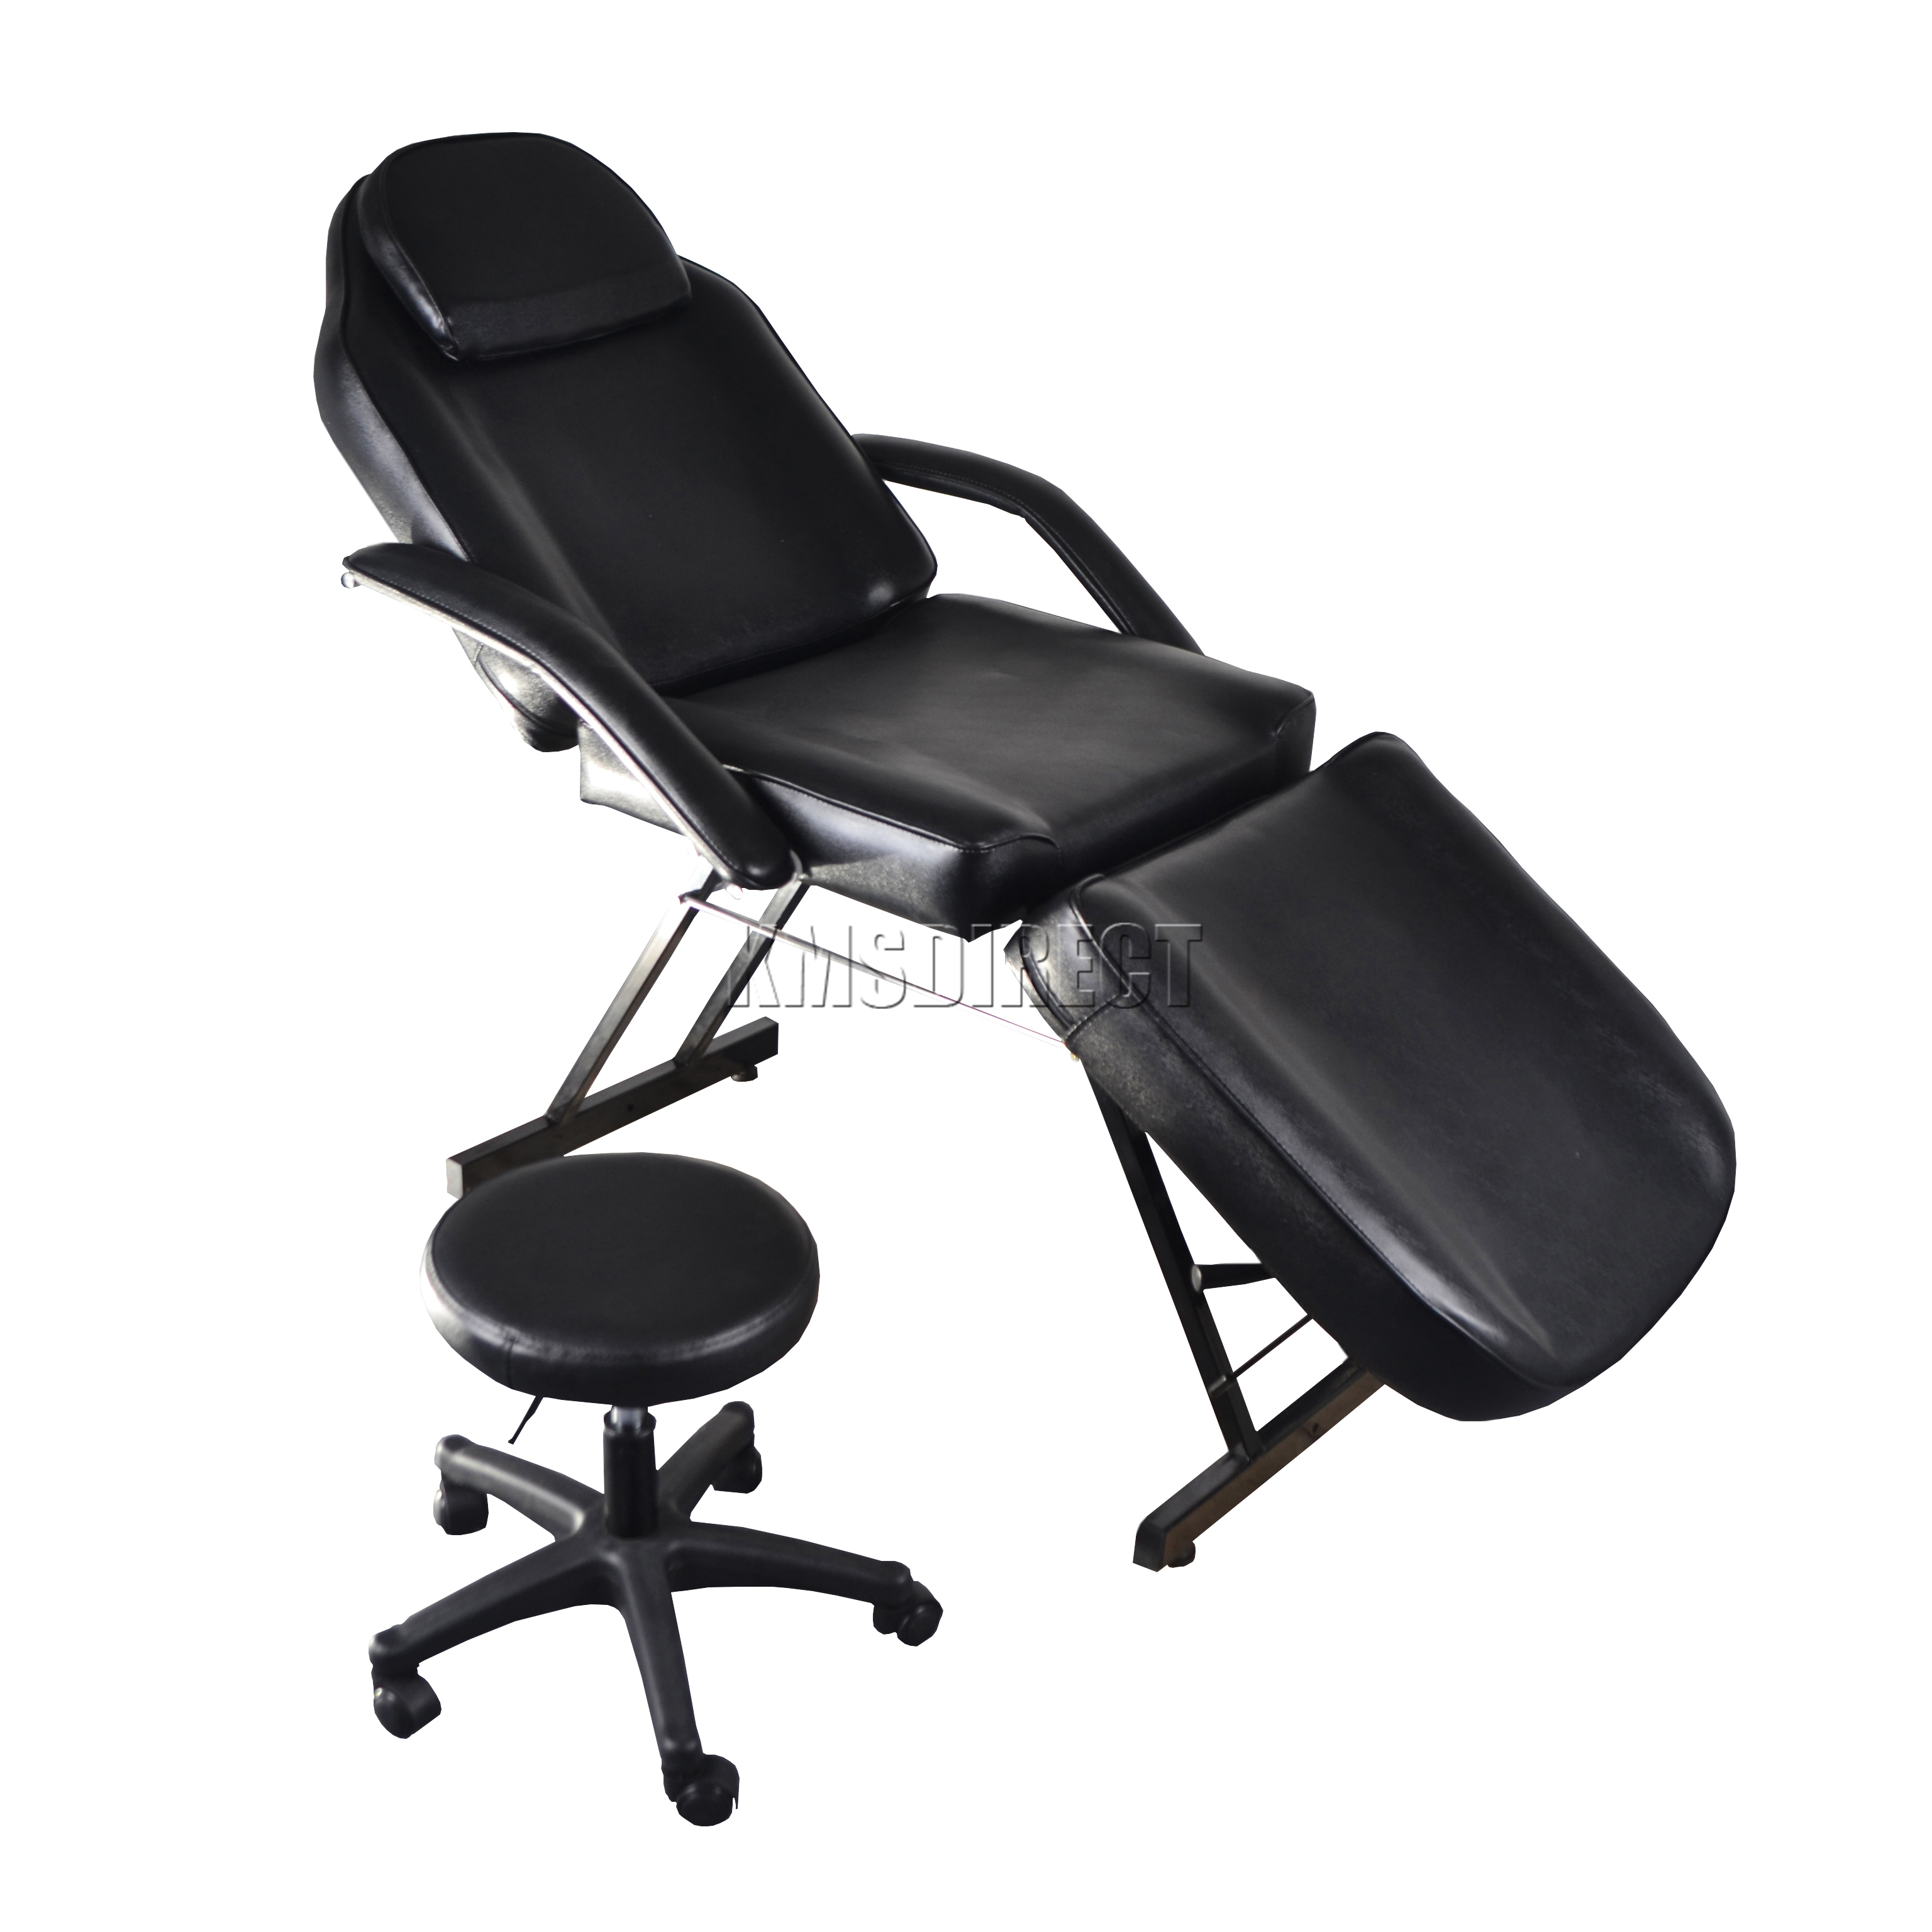 Foxhunter beauty salon chair massage table tattoo therapy for Sillas para tatuar